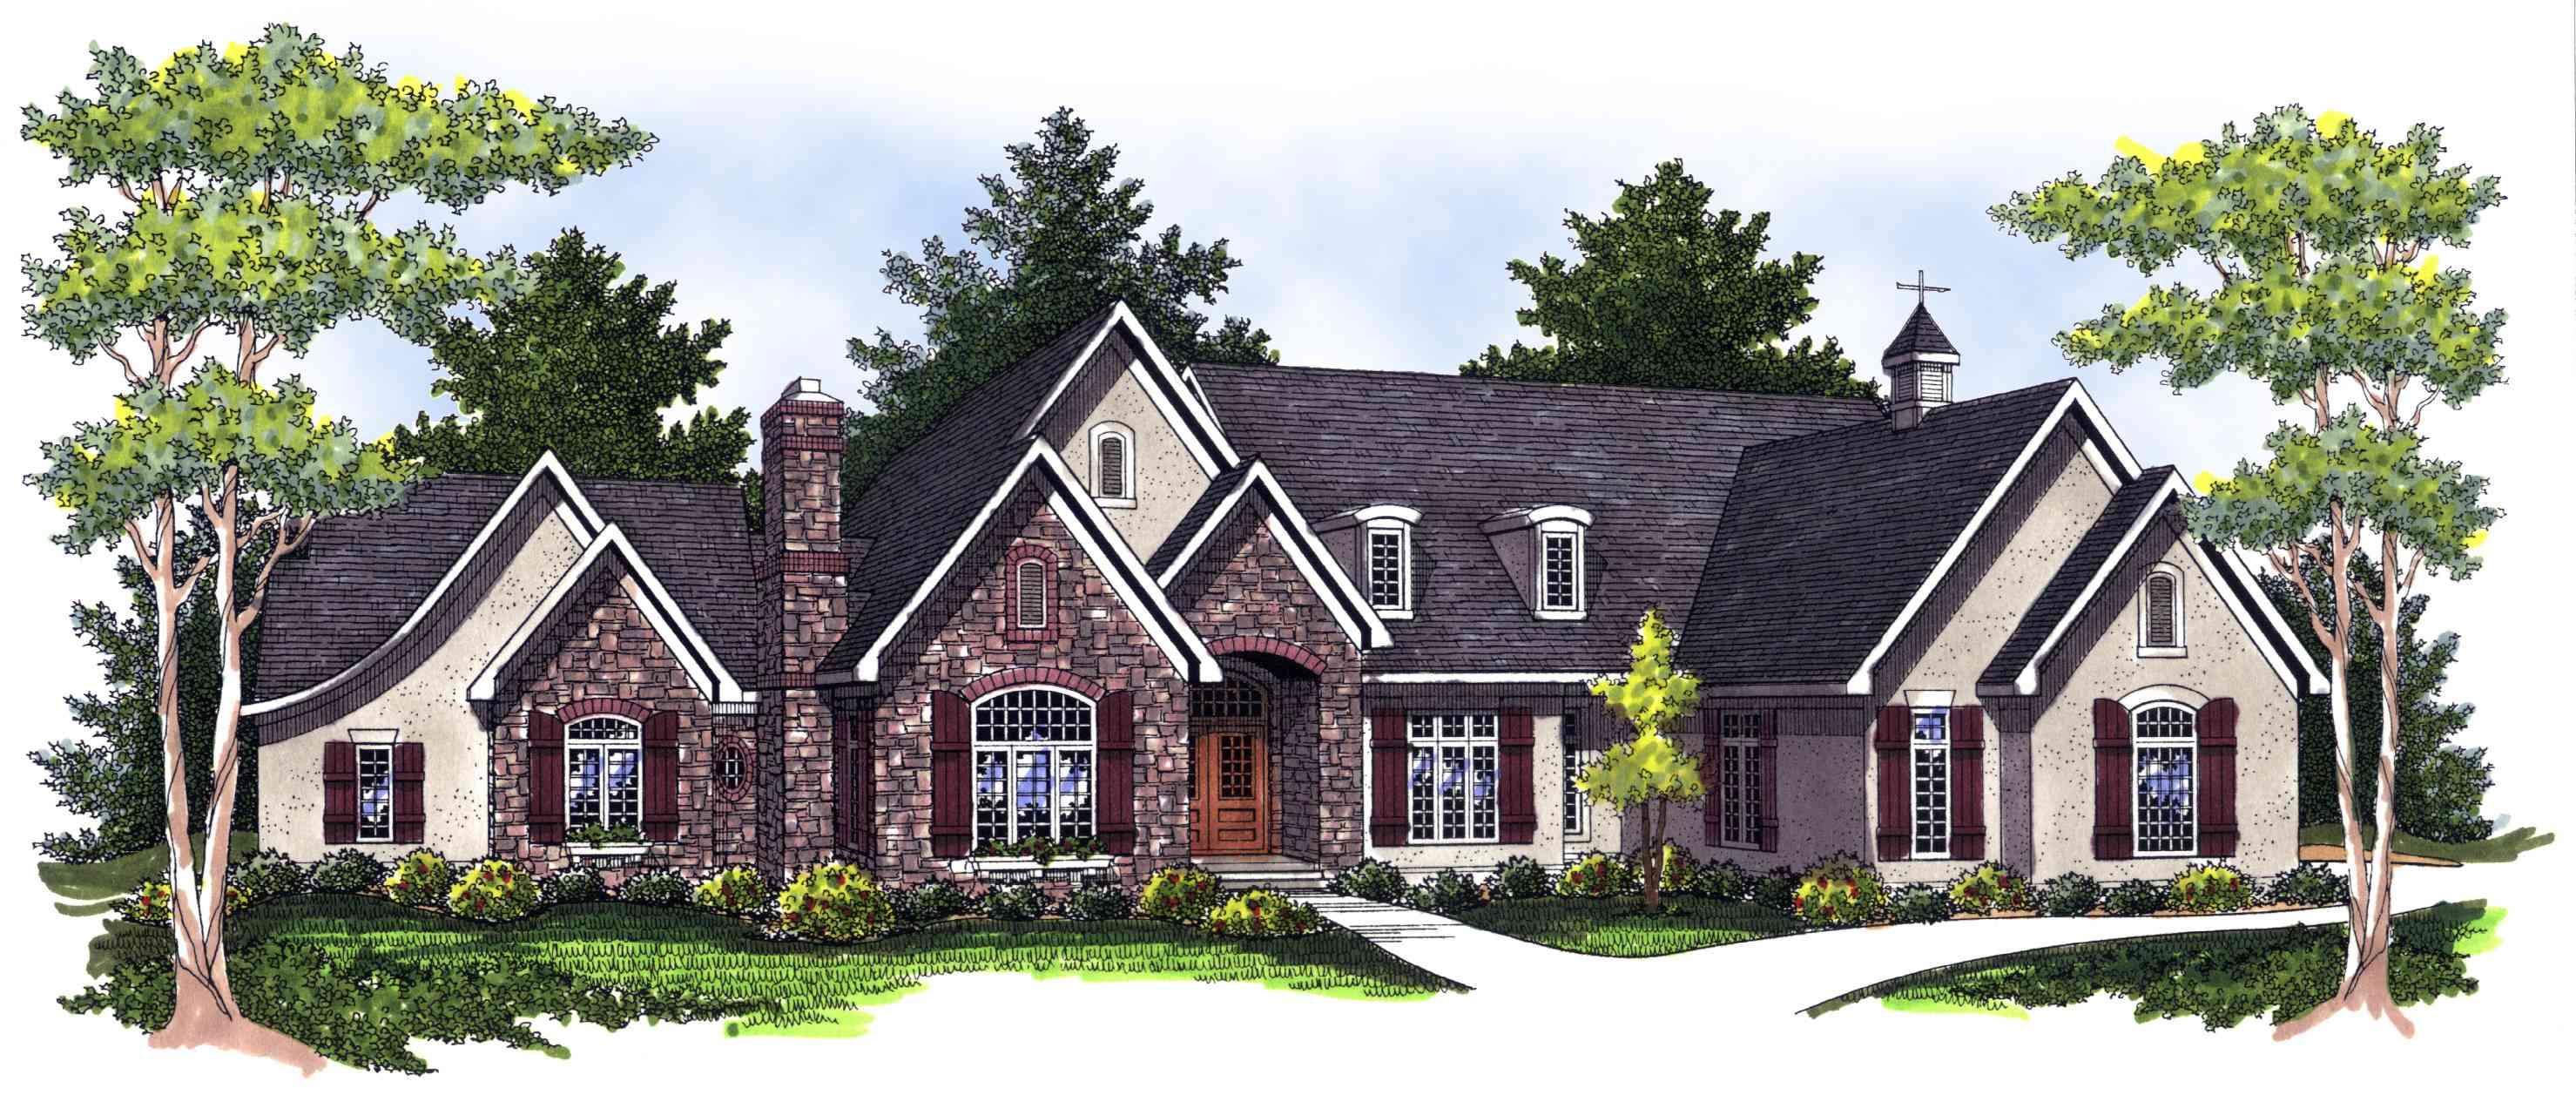 Stone Home Designs: Ranch With Stone And Stucco Mix - 89250AH